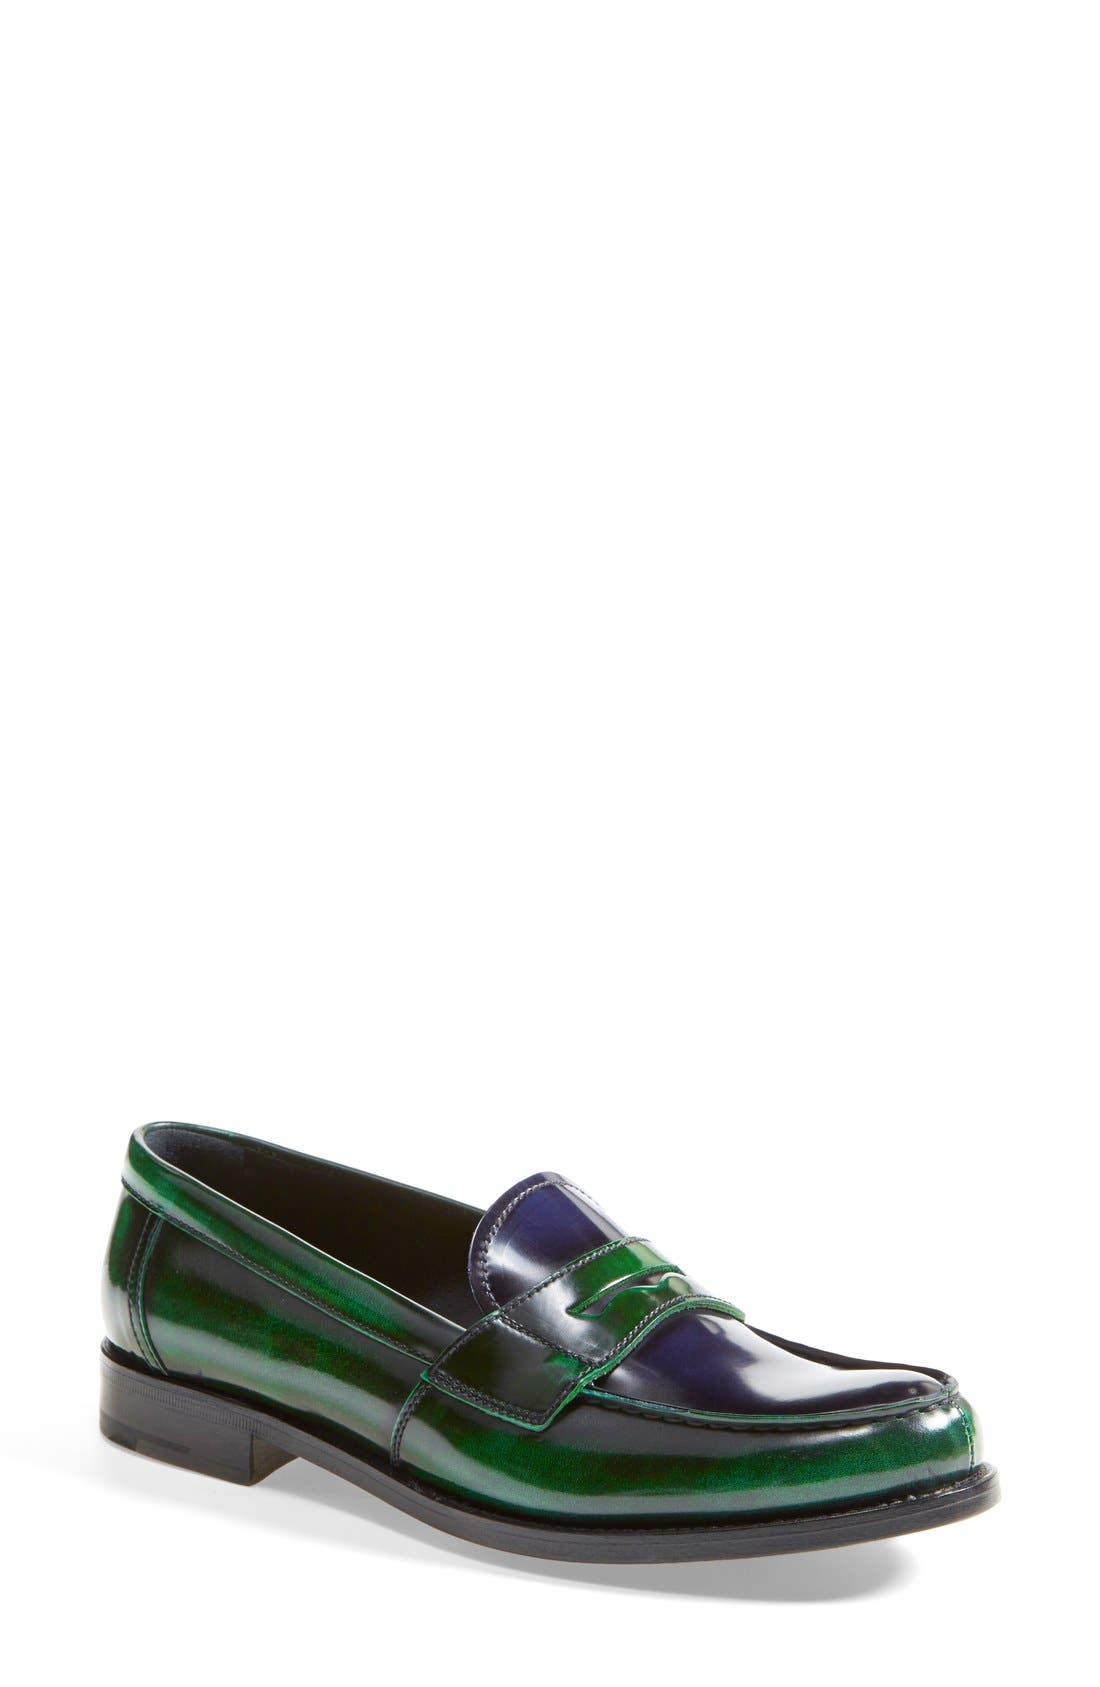 Main Image - Prada Bicolor Leather Penny Loafer (Women)